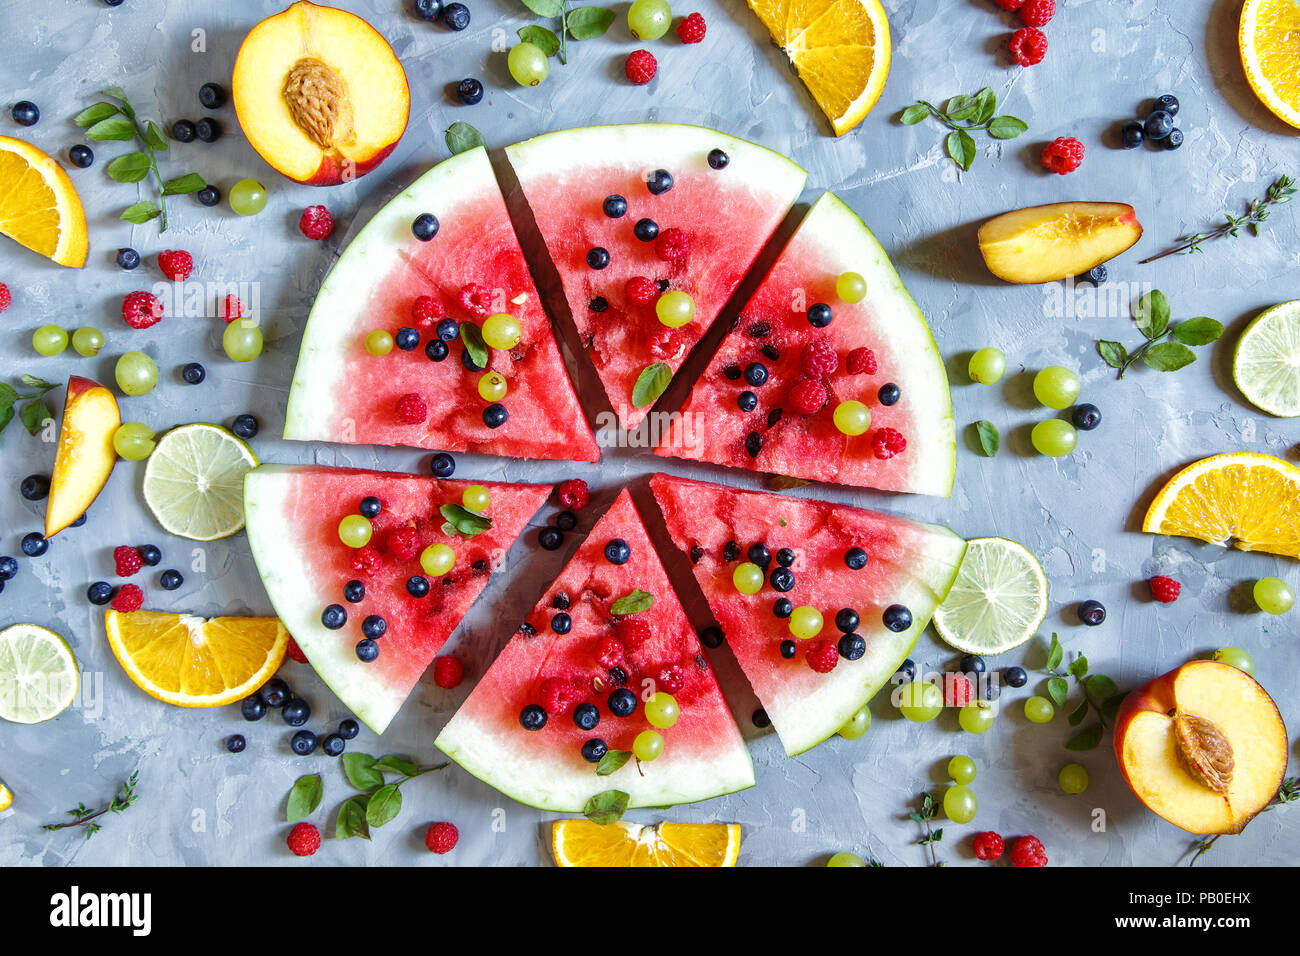 Bright Summer Wallpaper With Watermelon Slices Peaches